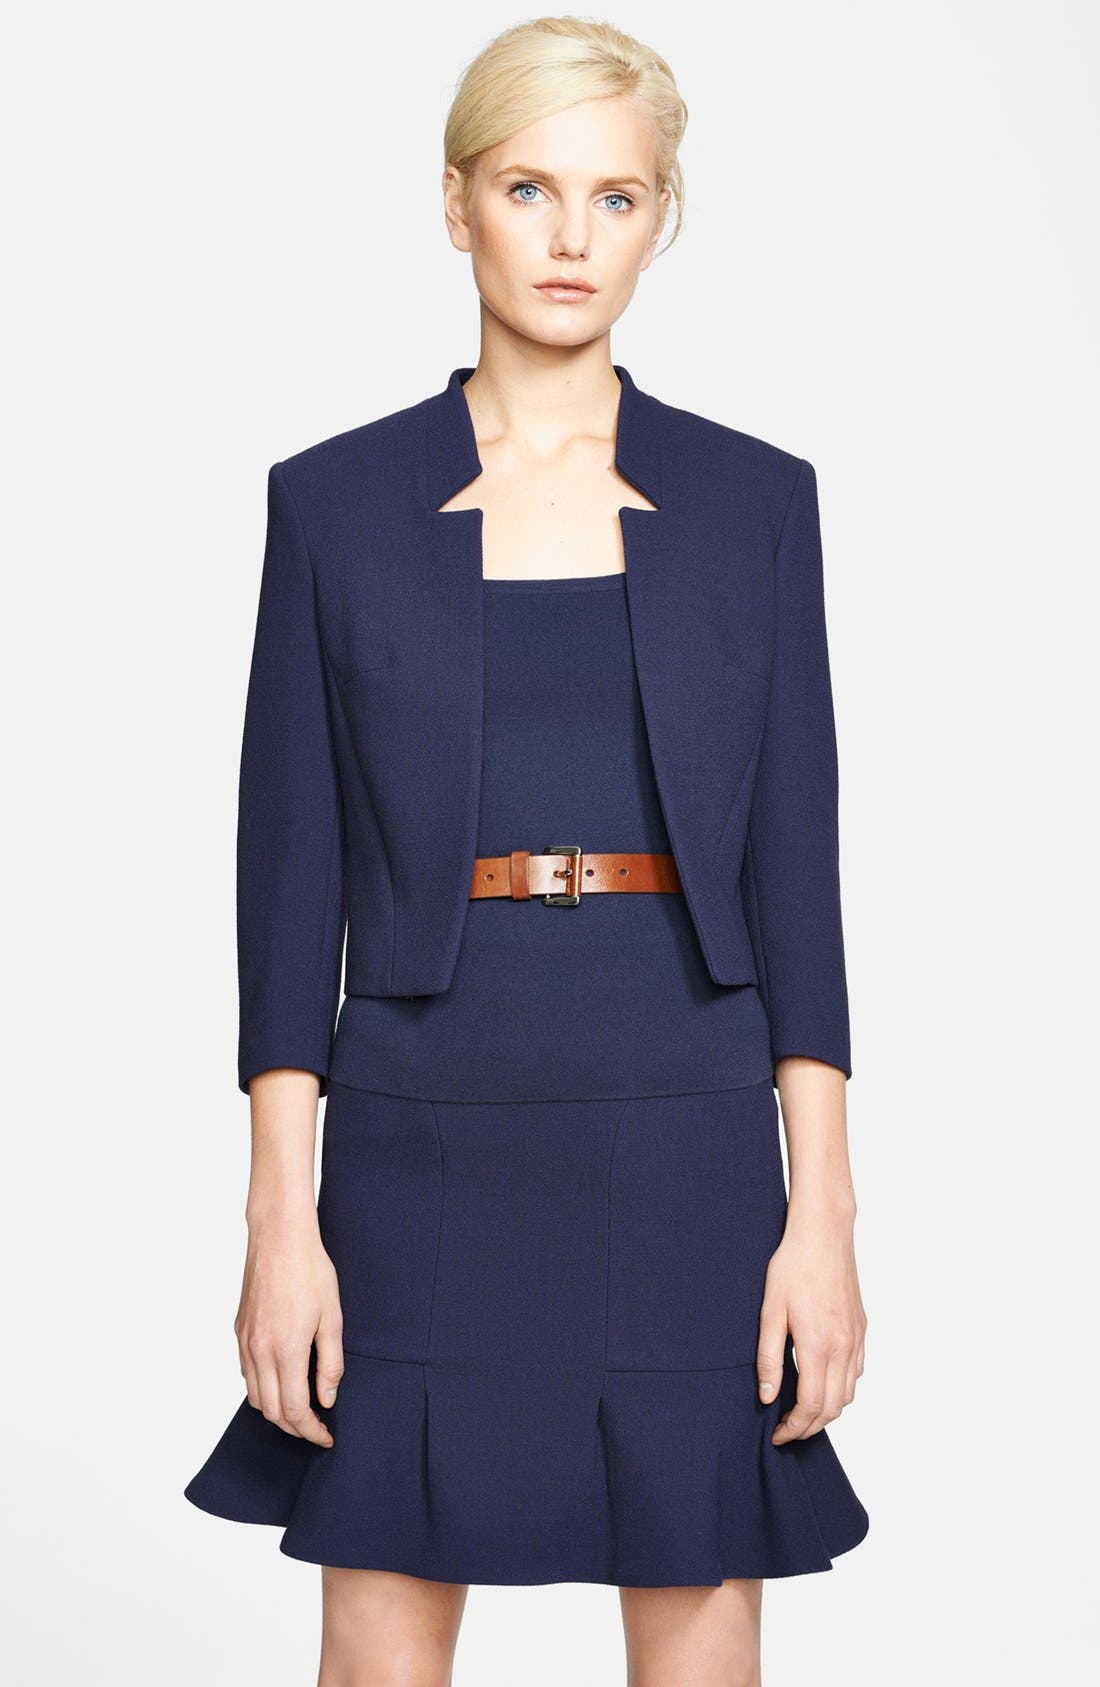 Main Image - Michael Kors Bouclé Stretch Wool Jacket